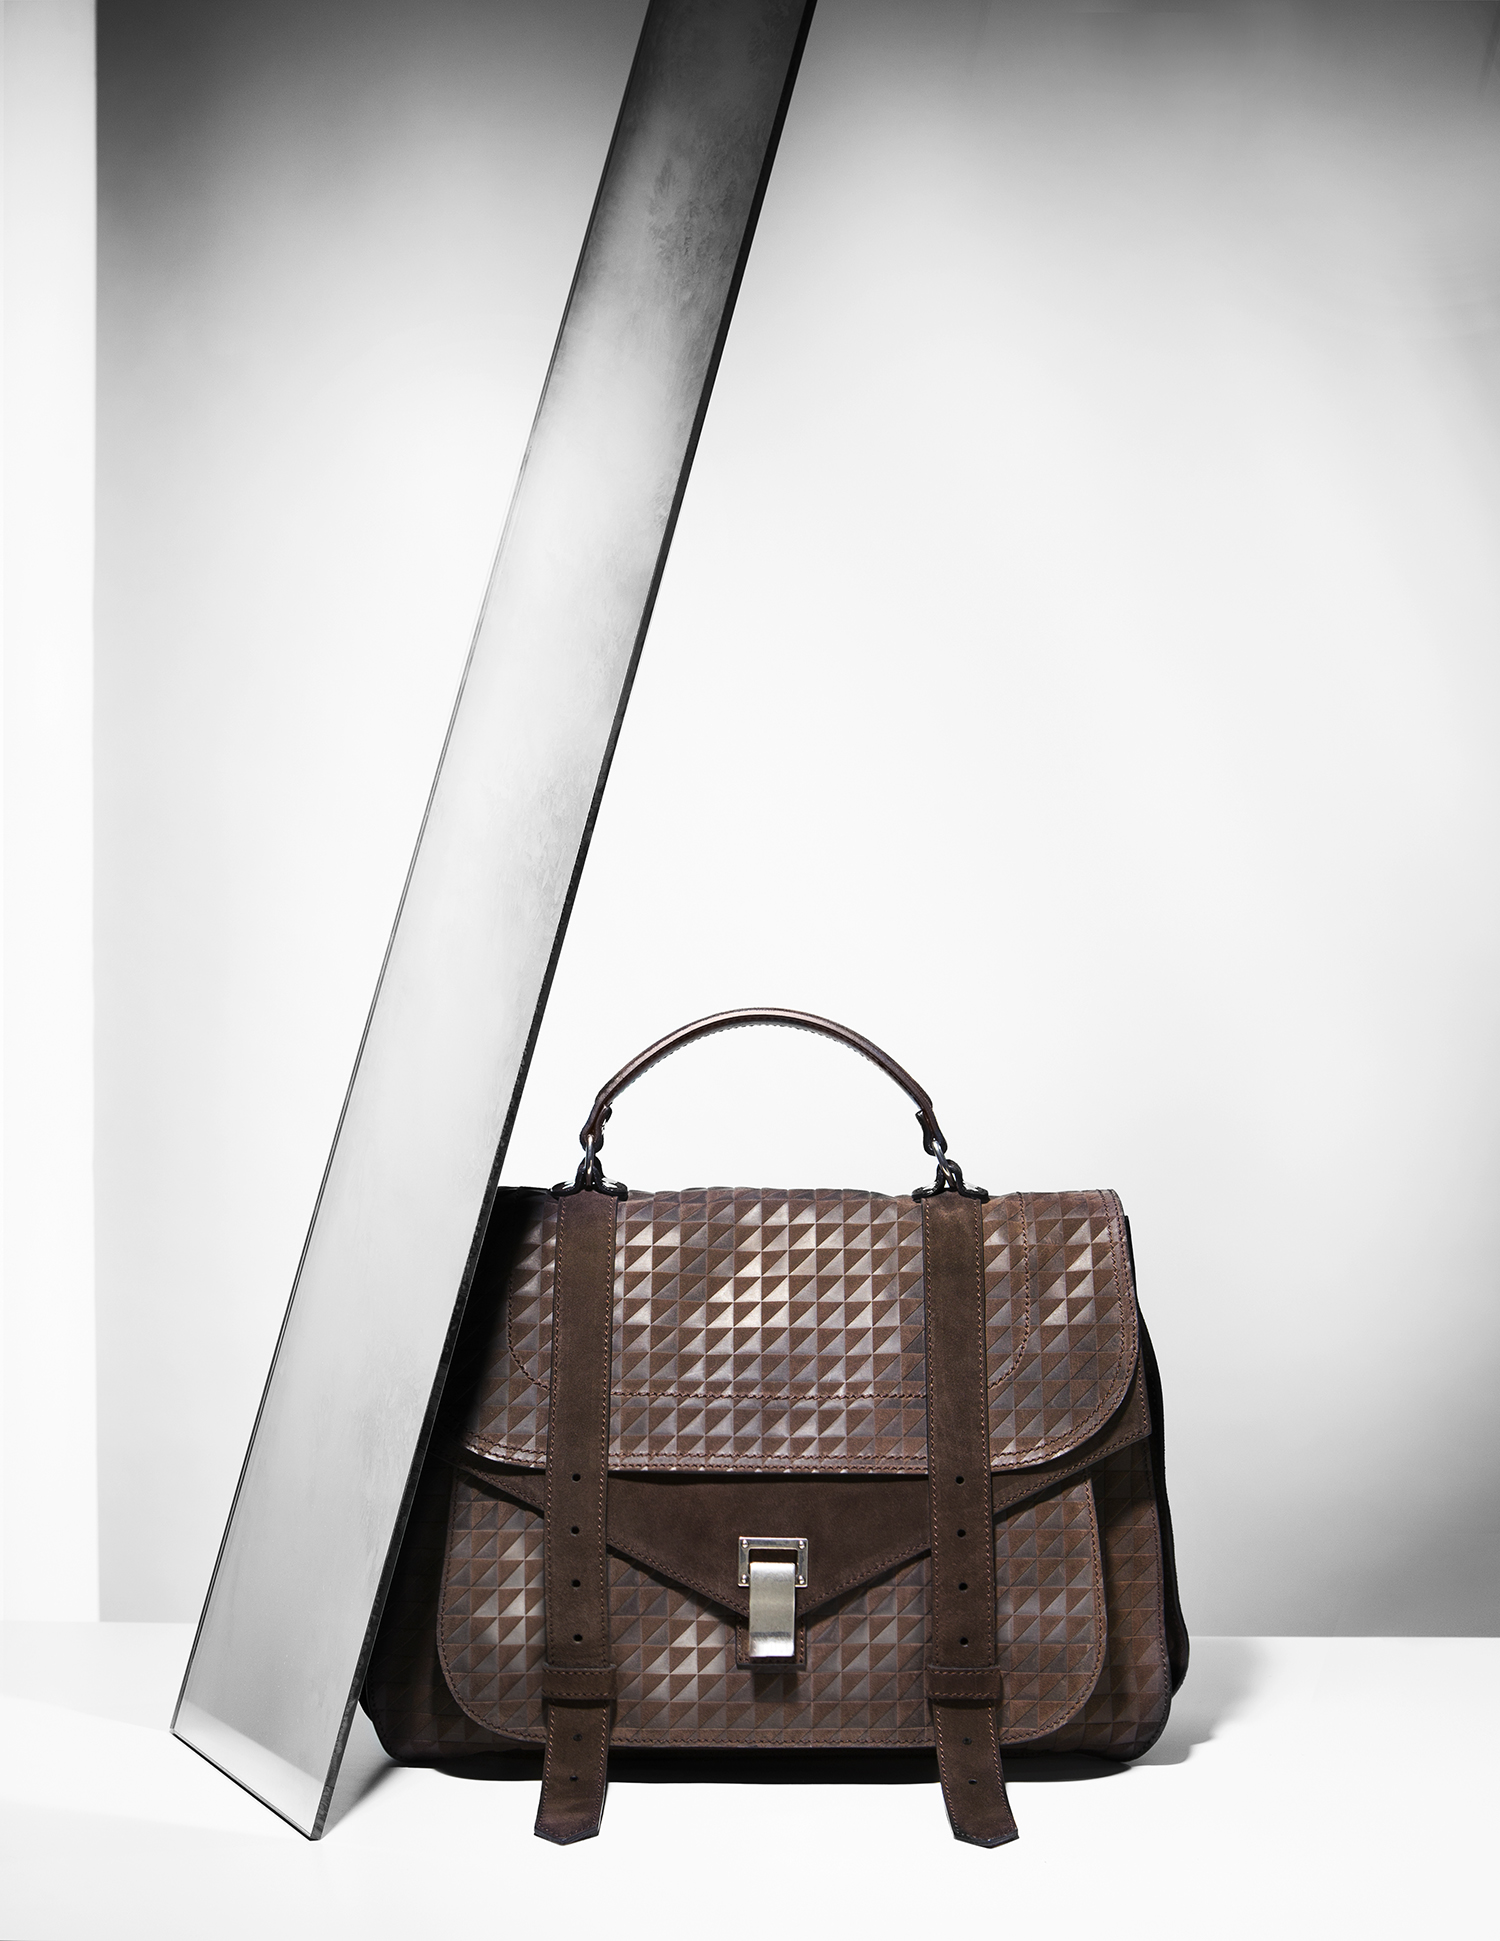 Luxury Purse photography by Molly Dickson